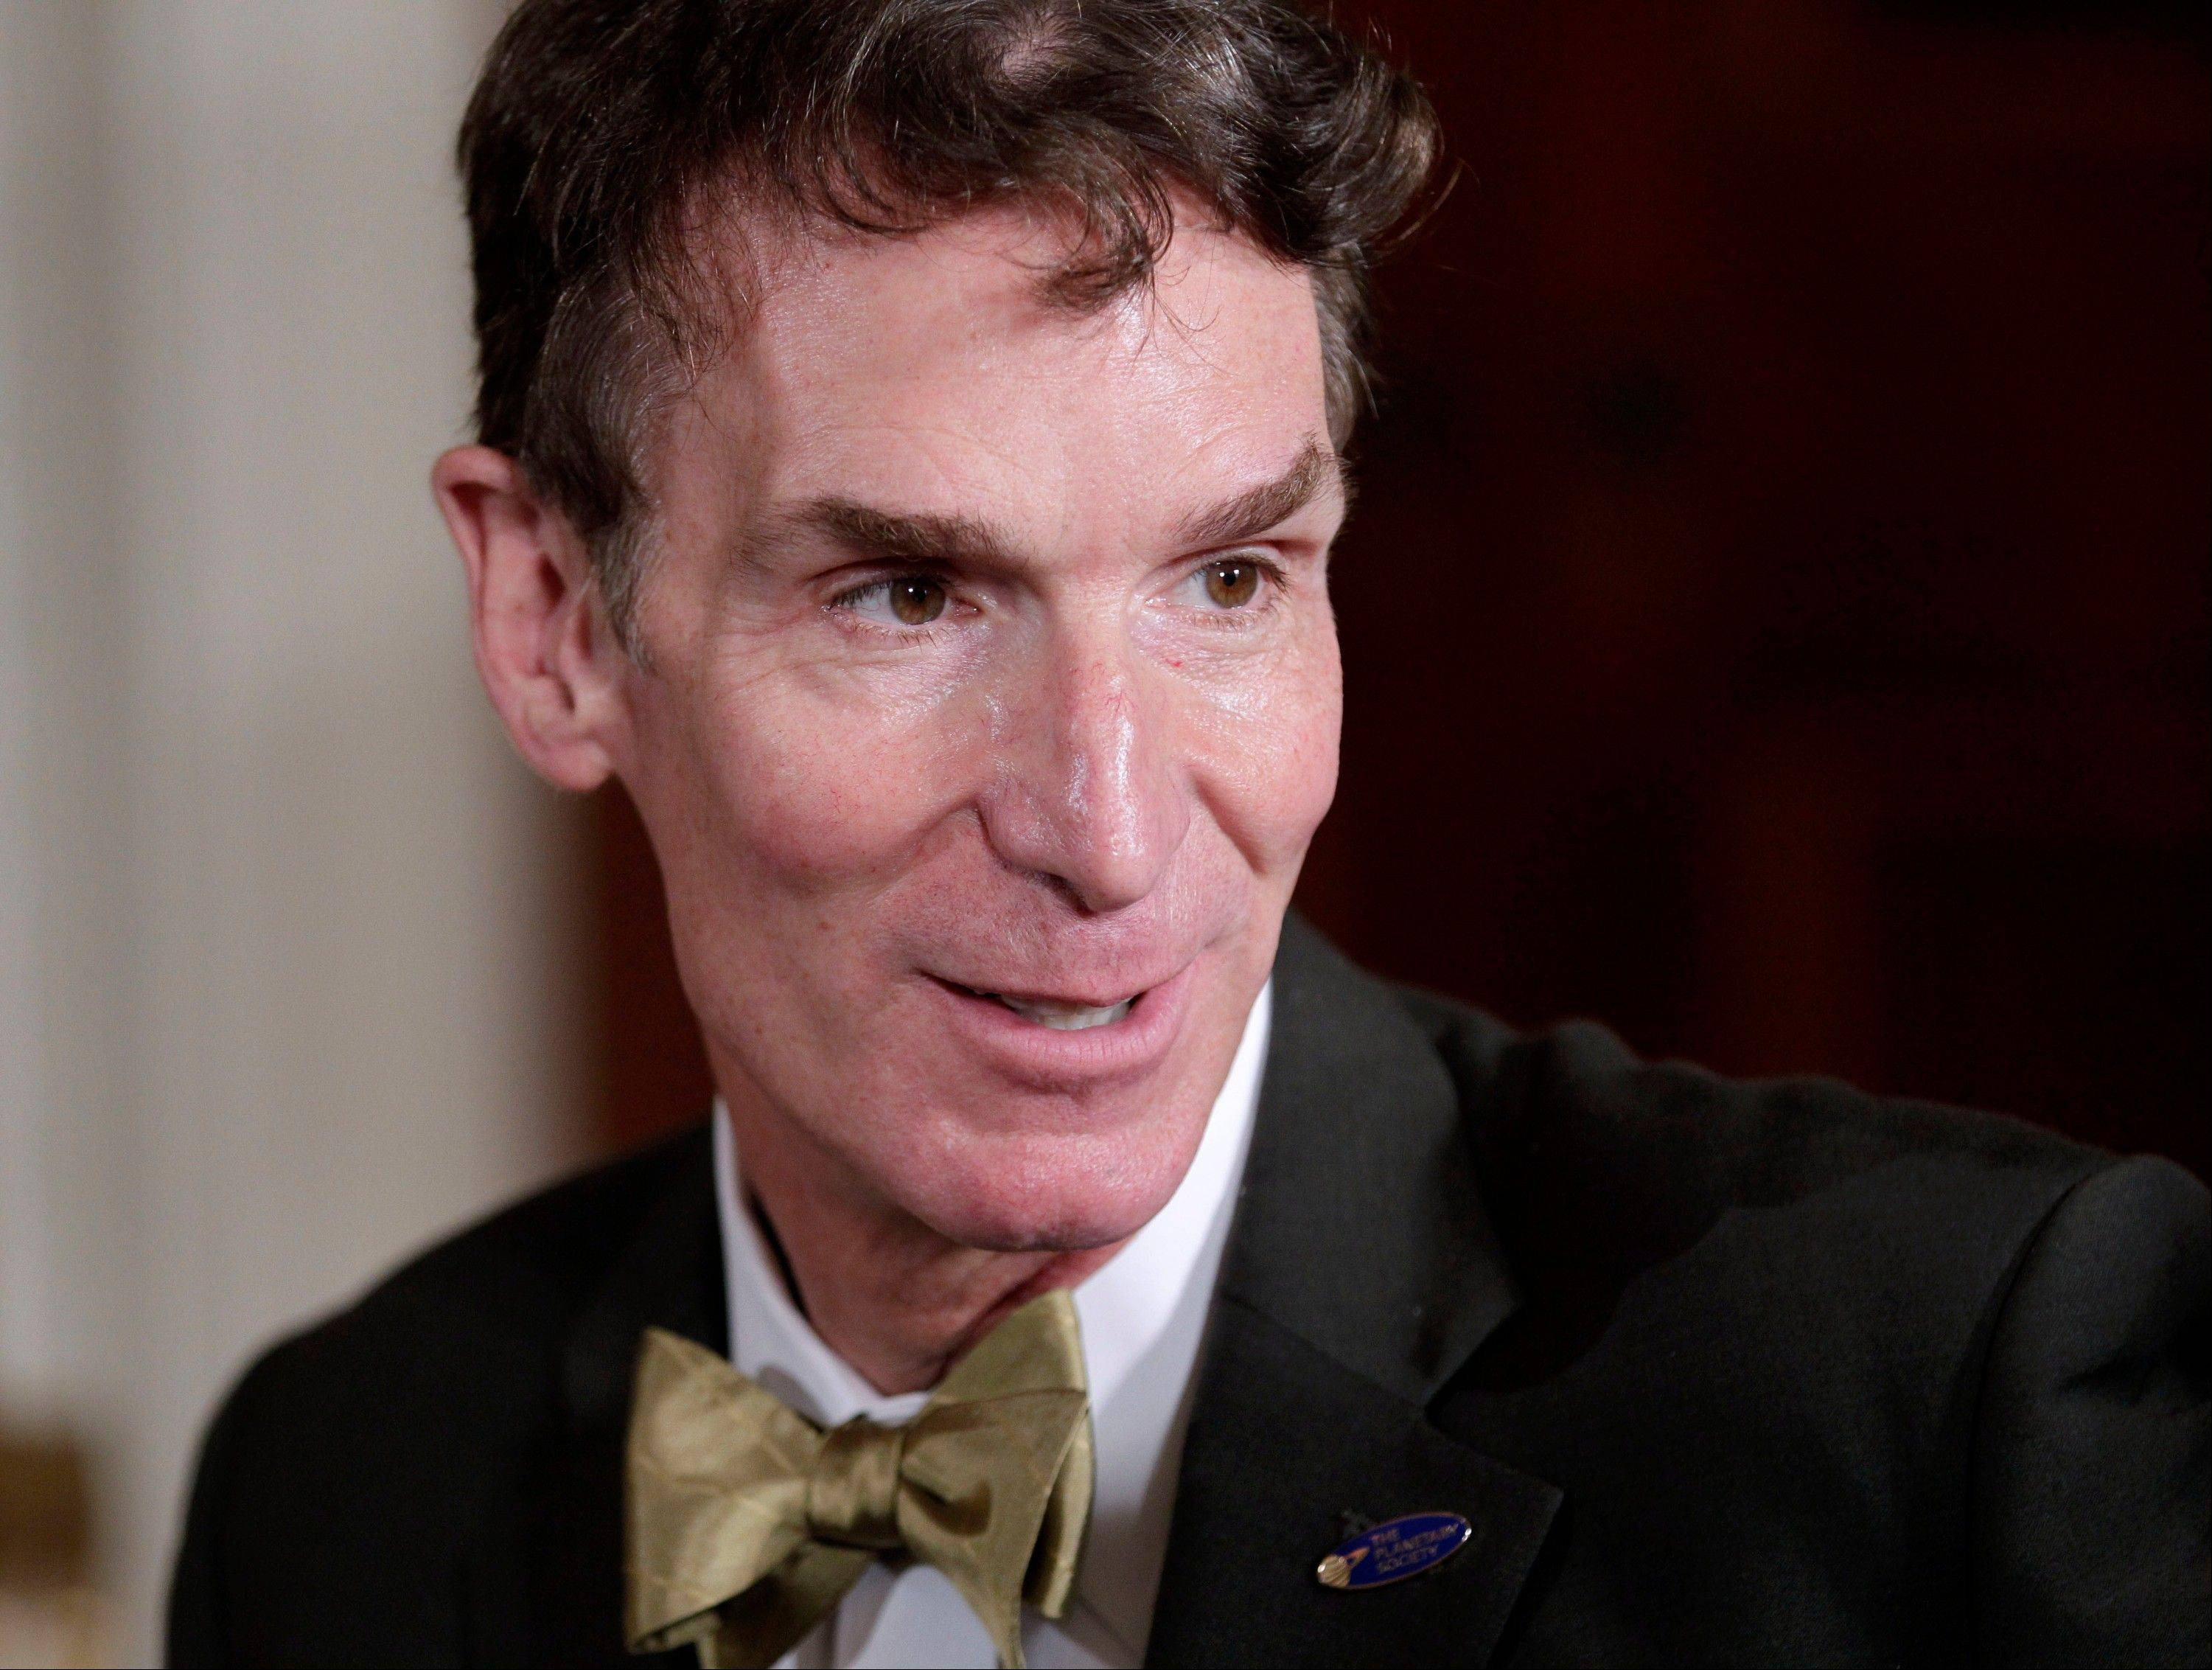 �Dancing With the Stars� producers said television personality Bill Nye received medical attention Tuesday after he was hurt during his most recent performance.